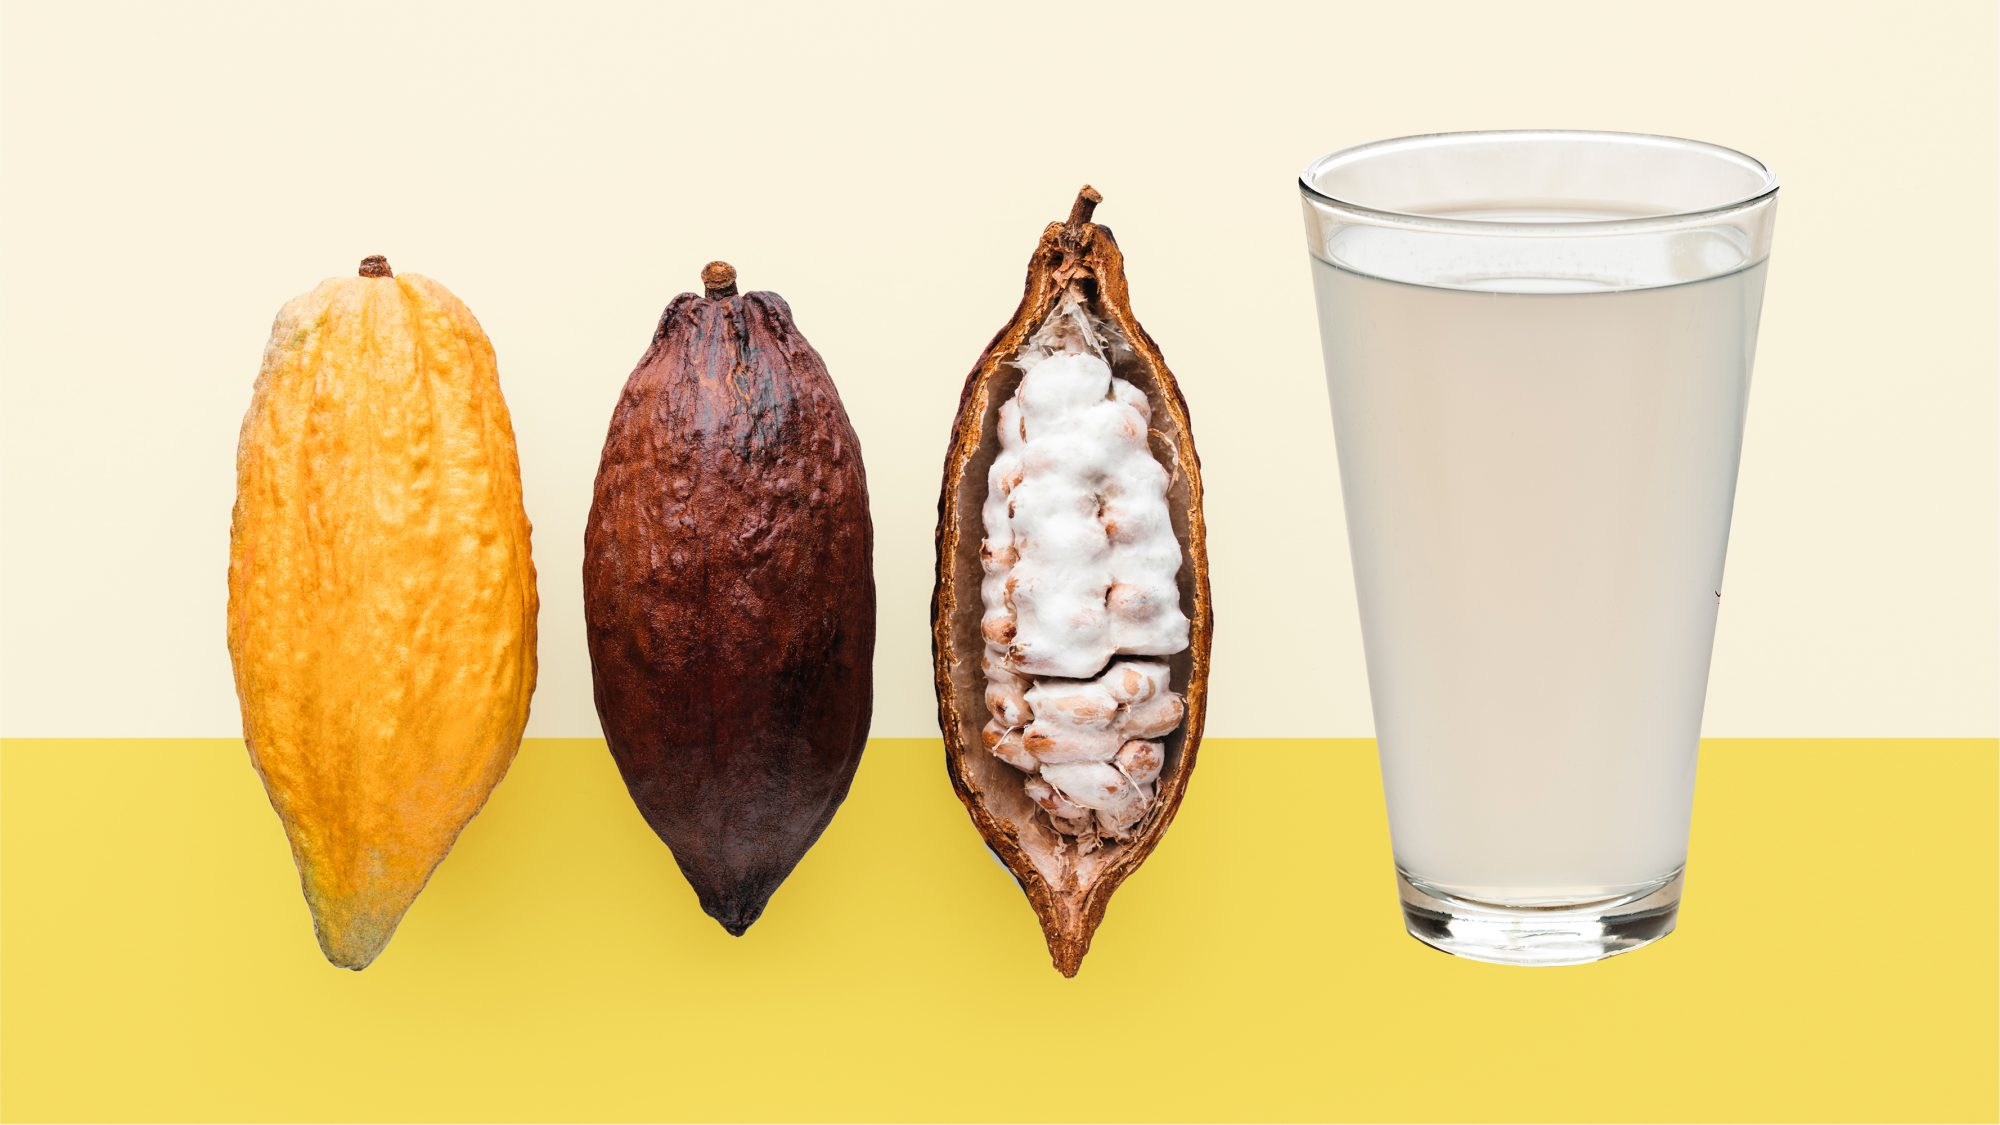 cacao-water: cacao beans and cacao water